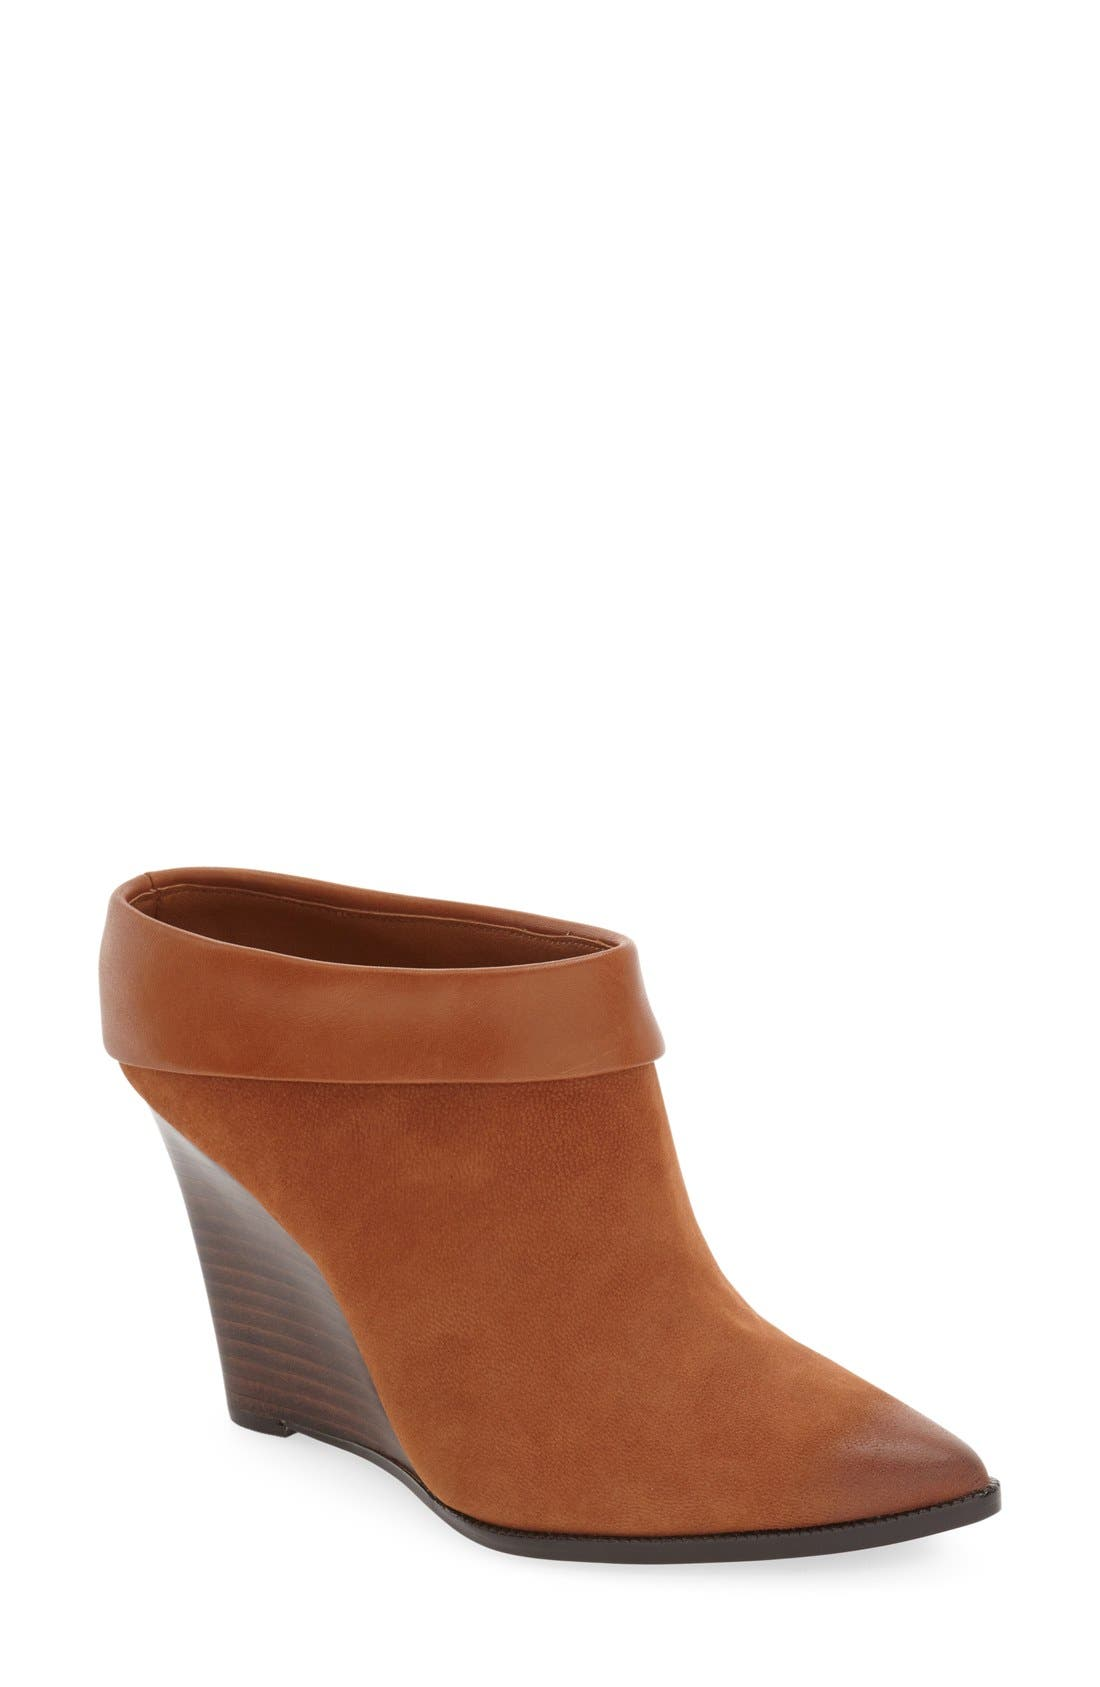 LINEA PAOLO 'Logan' Pointy Toe Wedge Bootie